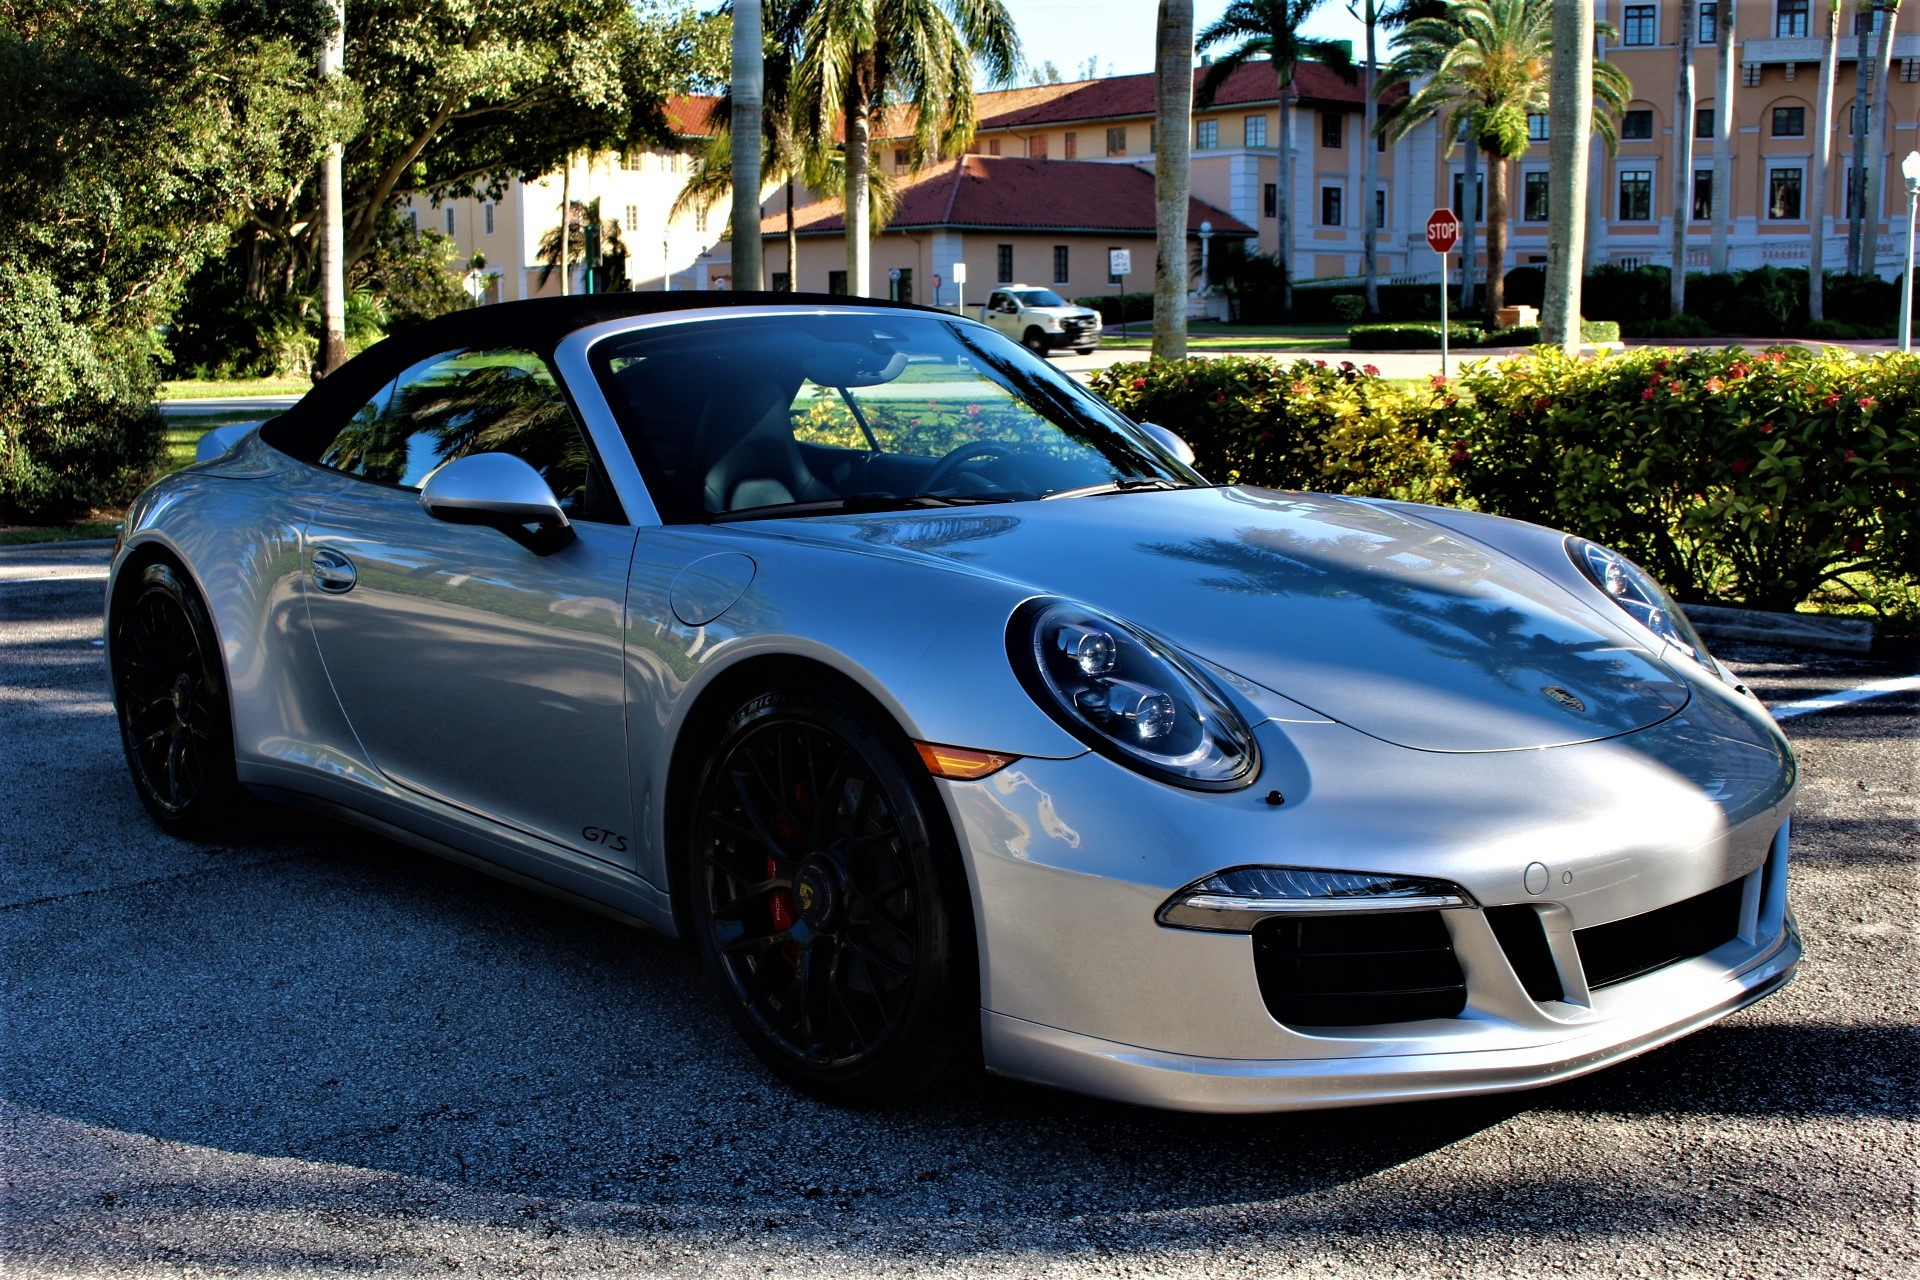 Used 2016 Porsche 911 Carrera GTS for sale Sold at The Gables Sports Cars in Miami FL 33146 2